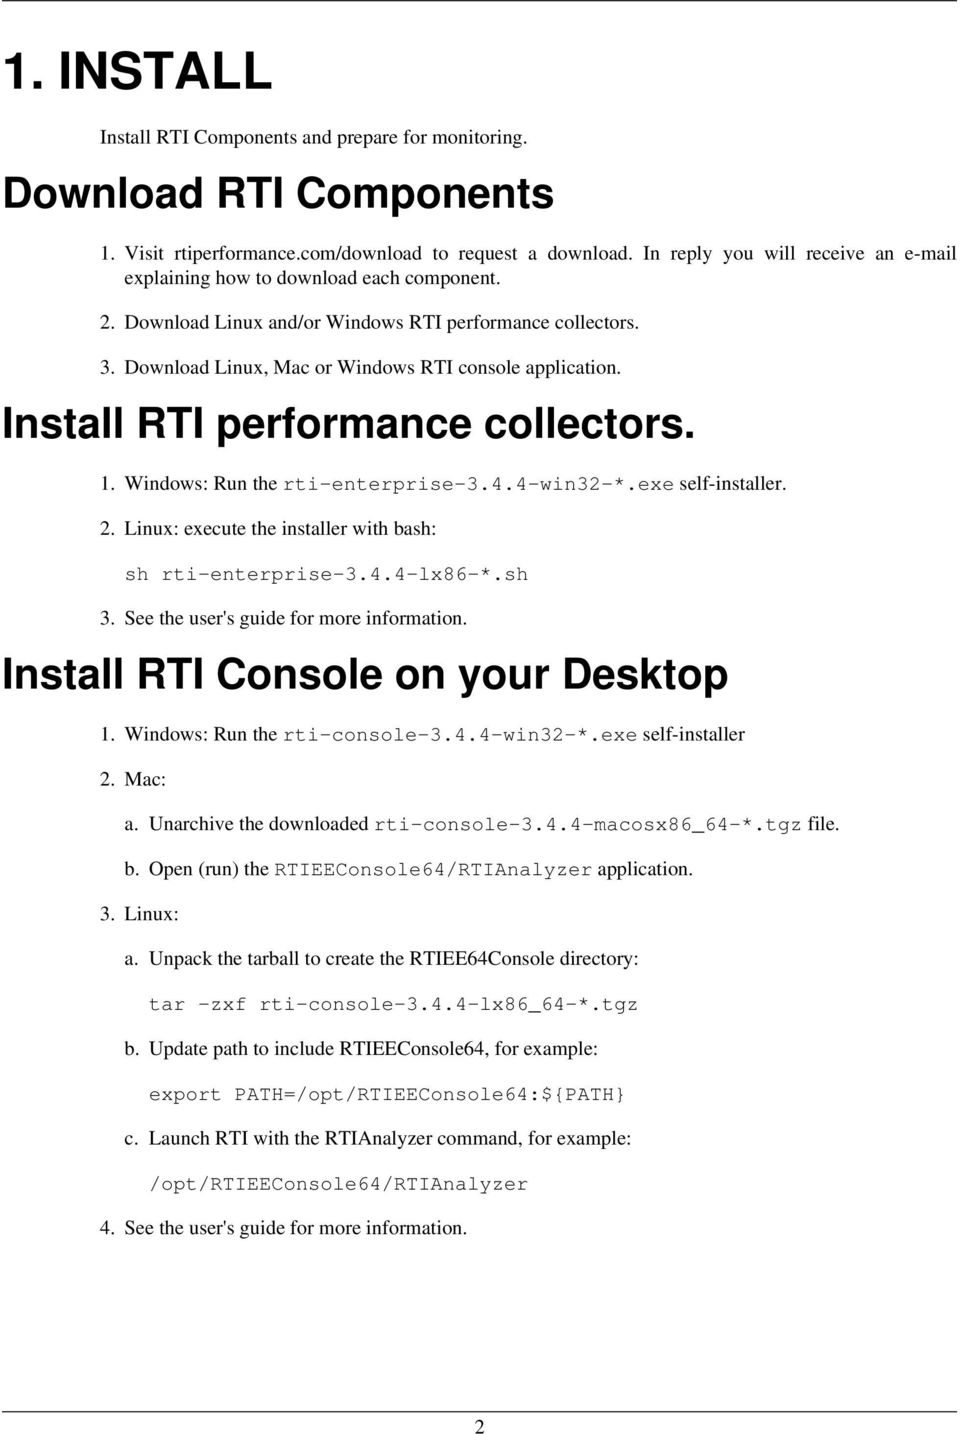 Install RTI performance collectors. 1. Windows: Run the rti-enterprise-3.4.4-win32-*.exe self-installer. 2. Linux: execute the installer with bash: sh rti-enterprise-3.4.4-lx86-*.sh 3.